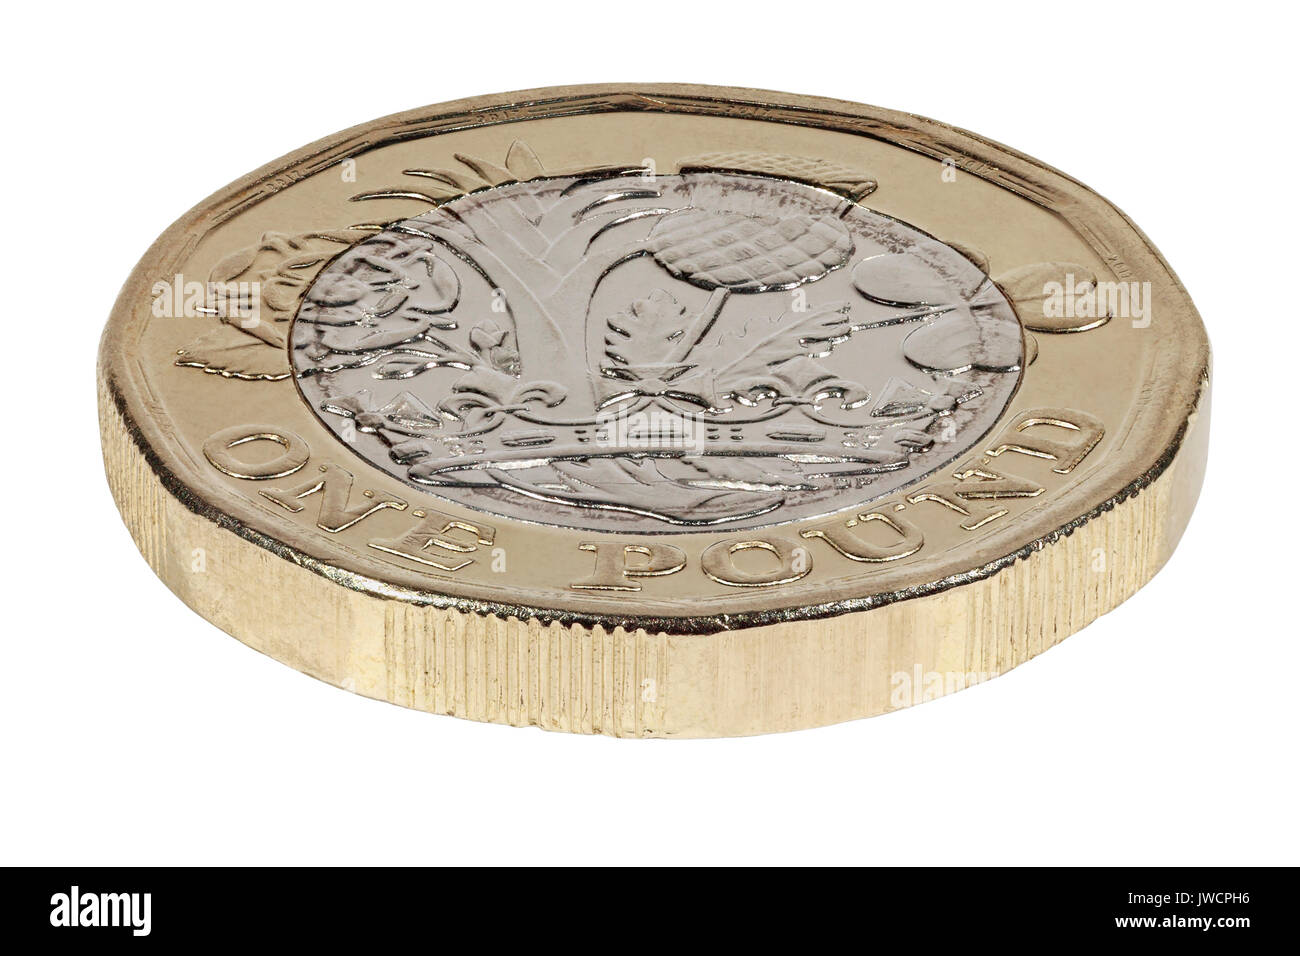 New 2017 £1 coin, reverse side, tails, depicting the rose, leek, thistle and clover representing Great Britain  Stock Photo